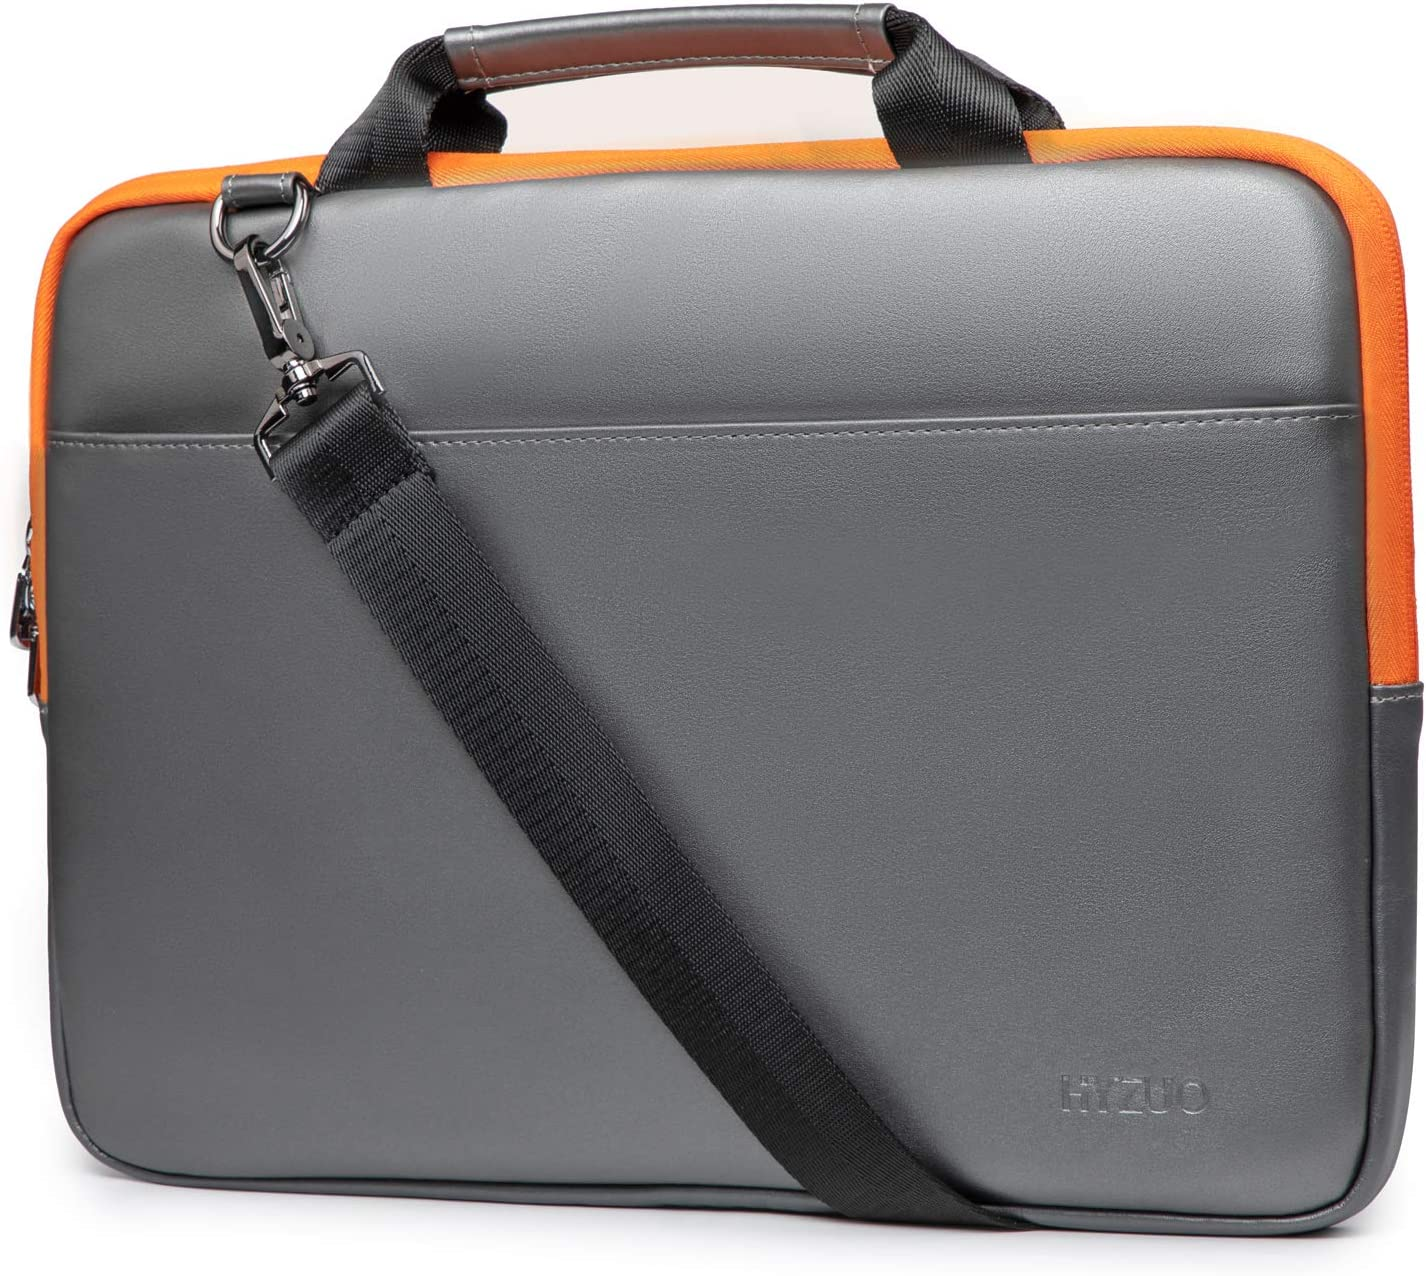 HYZUO 13-13.5 Inch Laptop Sleeve Handbag with Shoulder Strap Compatible with MacBook Air 13 M1/MacBook Pro 13 M1/iPad Pro 12.9/13.5 Inch Surface Laptop/Book/Dell Inspiron 13/HP ENVY 13/Asus Zenbook 13